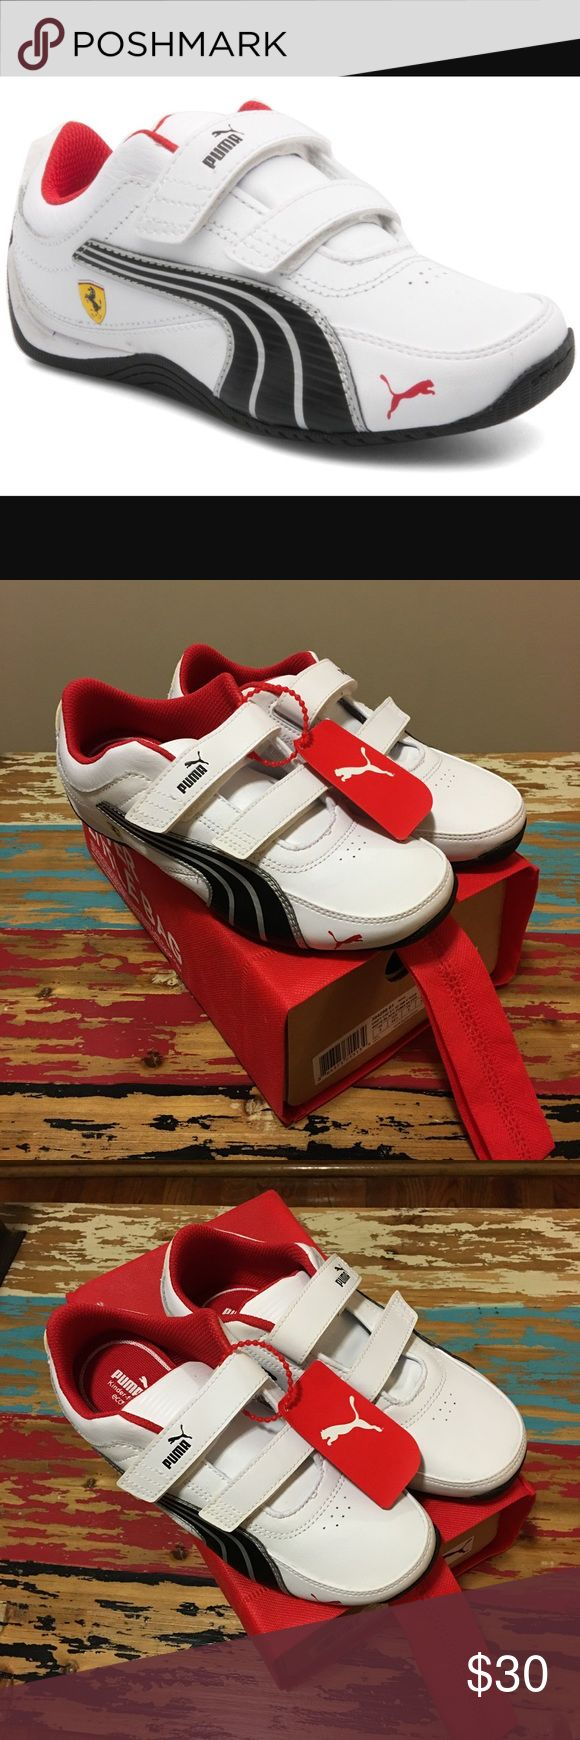 NEW Puma Drift Cat Kids Sneakers Brand-New never worn YOUTH Puma Drift Cat sneakers in white with black and silver detailing..red interior and red Puma logo at front of shoe..leather uppers with Velcro hook and loop closure for easy on and off..these are a youth size 3. Puma Shoes Sneakers